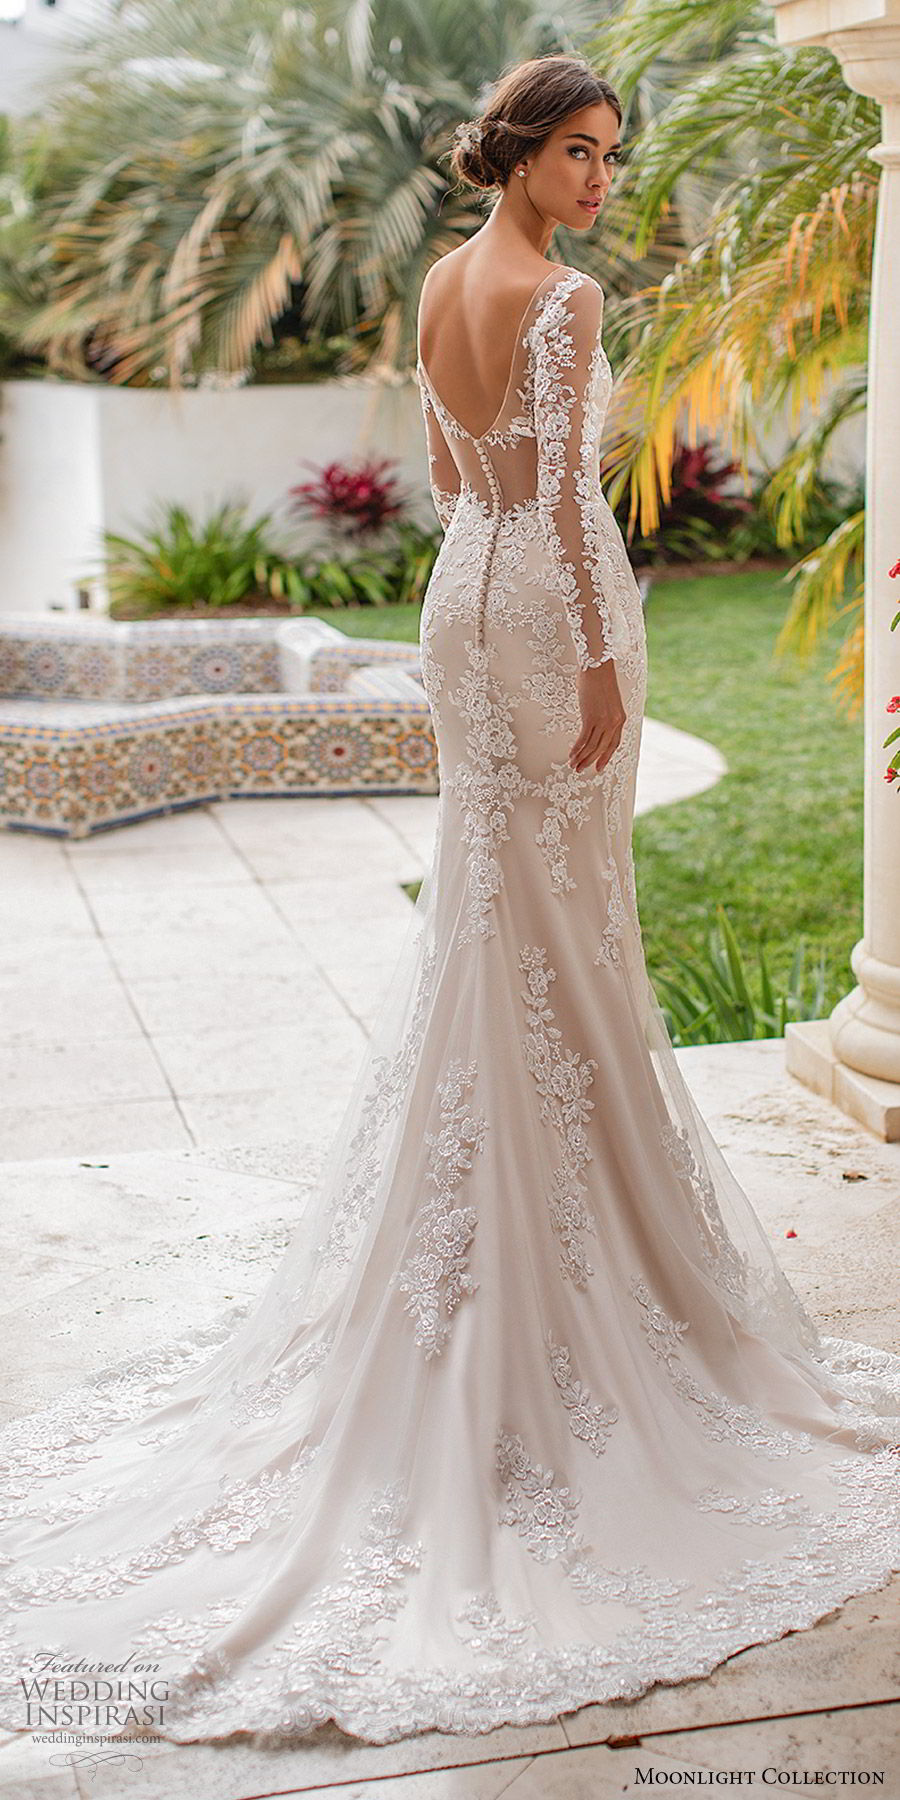 moonlight collection fall 2019 bridal illusion long sleeves sheer v neck sweetheart fully embellished lace sheath wedding dress (2) low illusion back chapel train elegant romantic bv